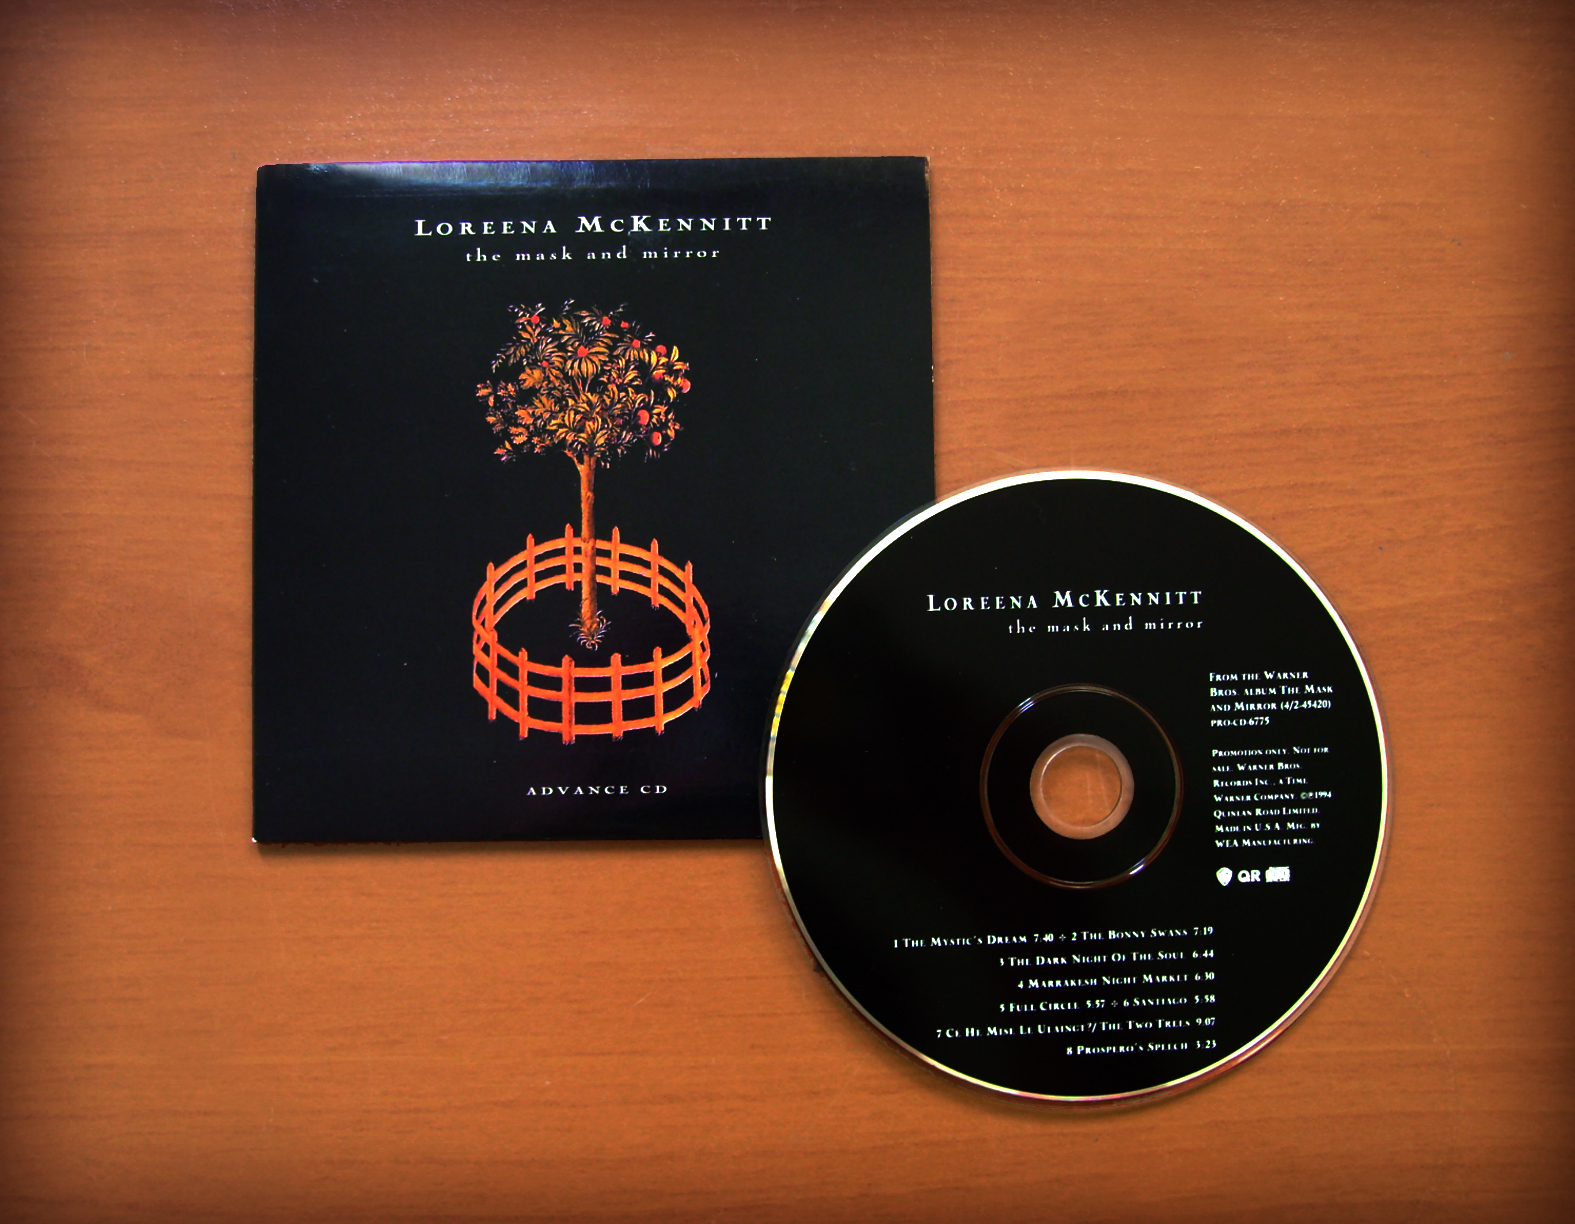 loreena mckennitt collection 1994 the mask and mirror advance cd